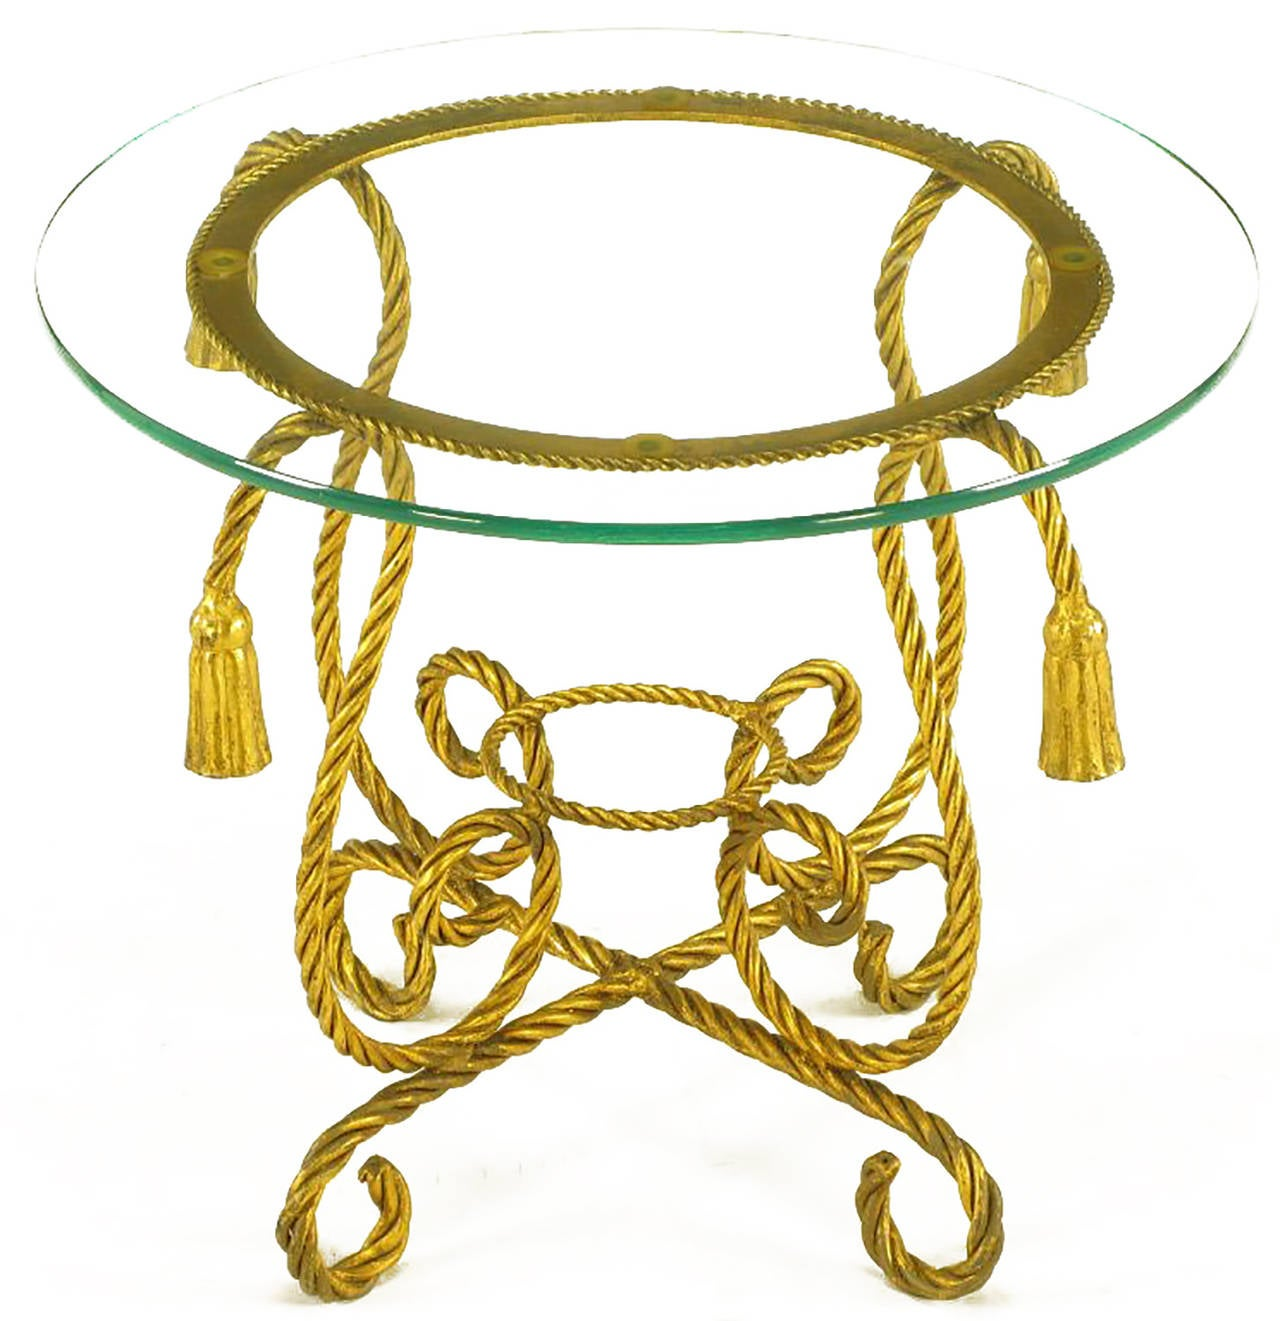 Pair of small round tables, or gueridons, with a frame made of gilt iron braided to look like rope. 20